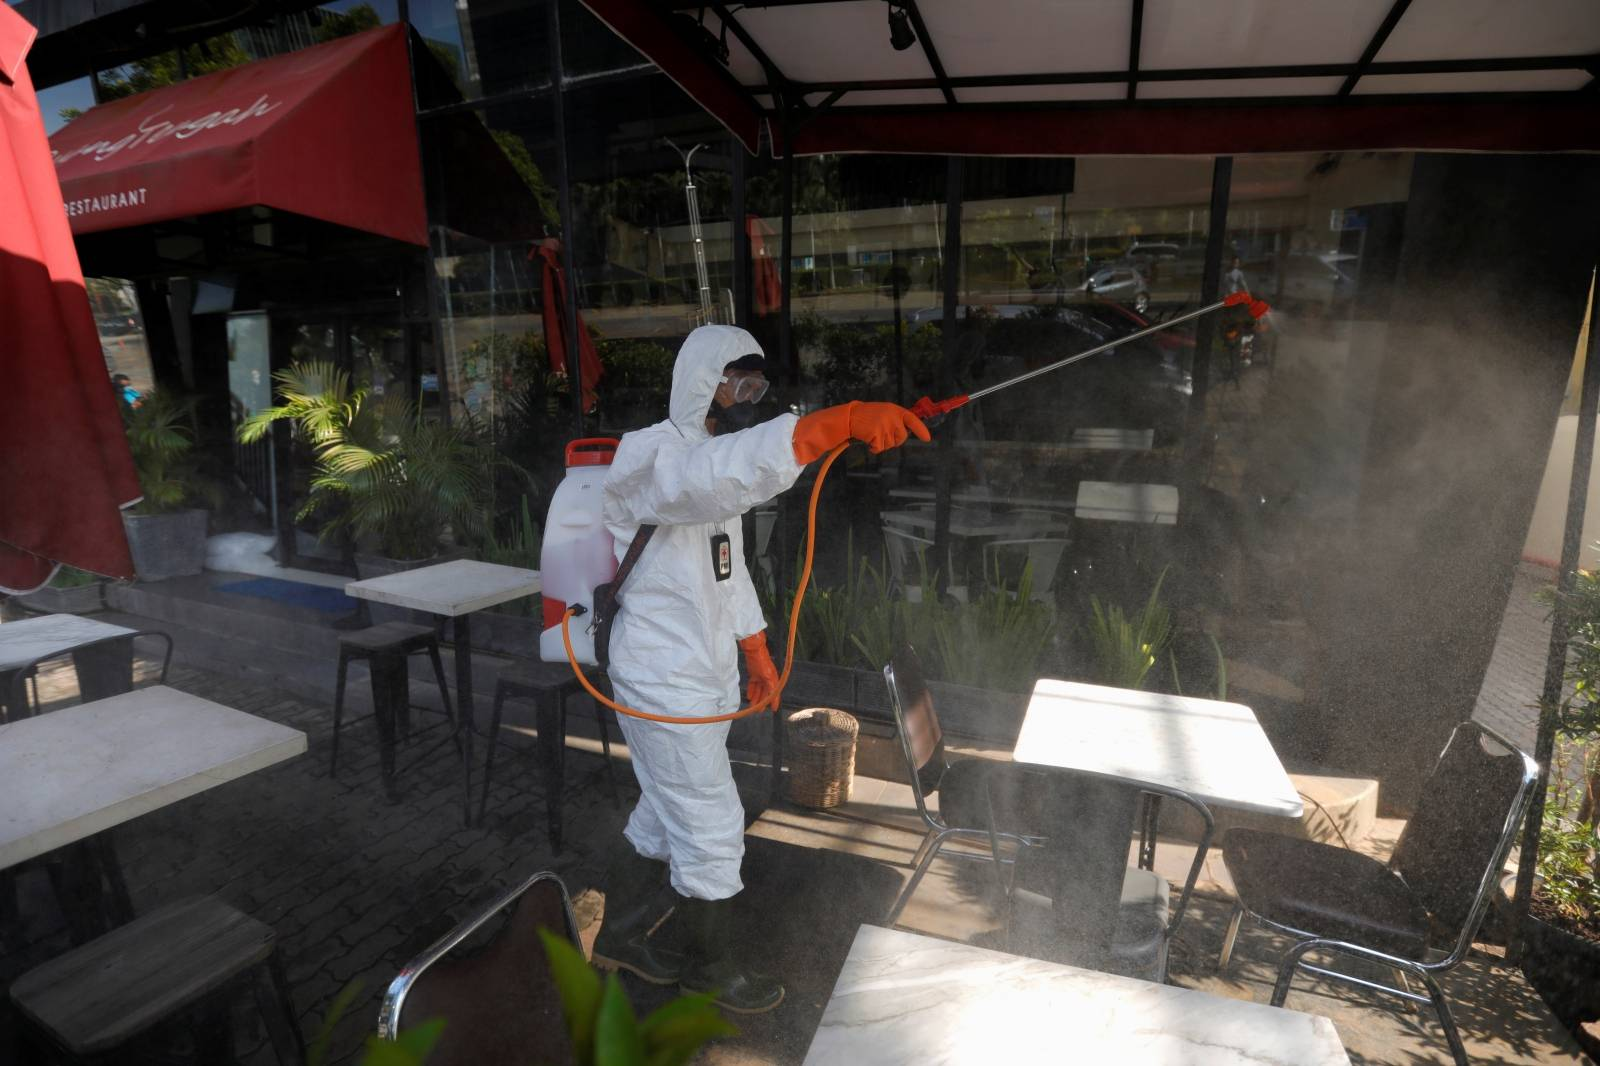 Indonesia's Red Cross personnel sprays disinfectant outside a restaurant at a department store amid the spread of coronavirus (COVID-19) in Jakarta